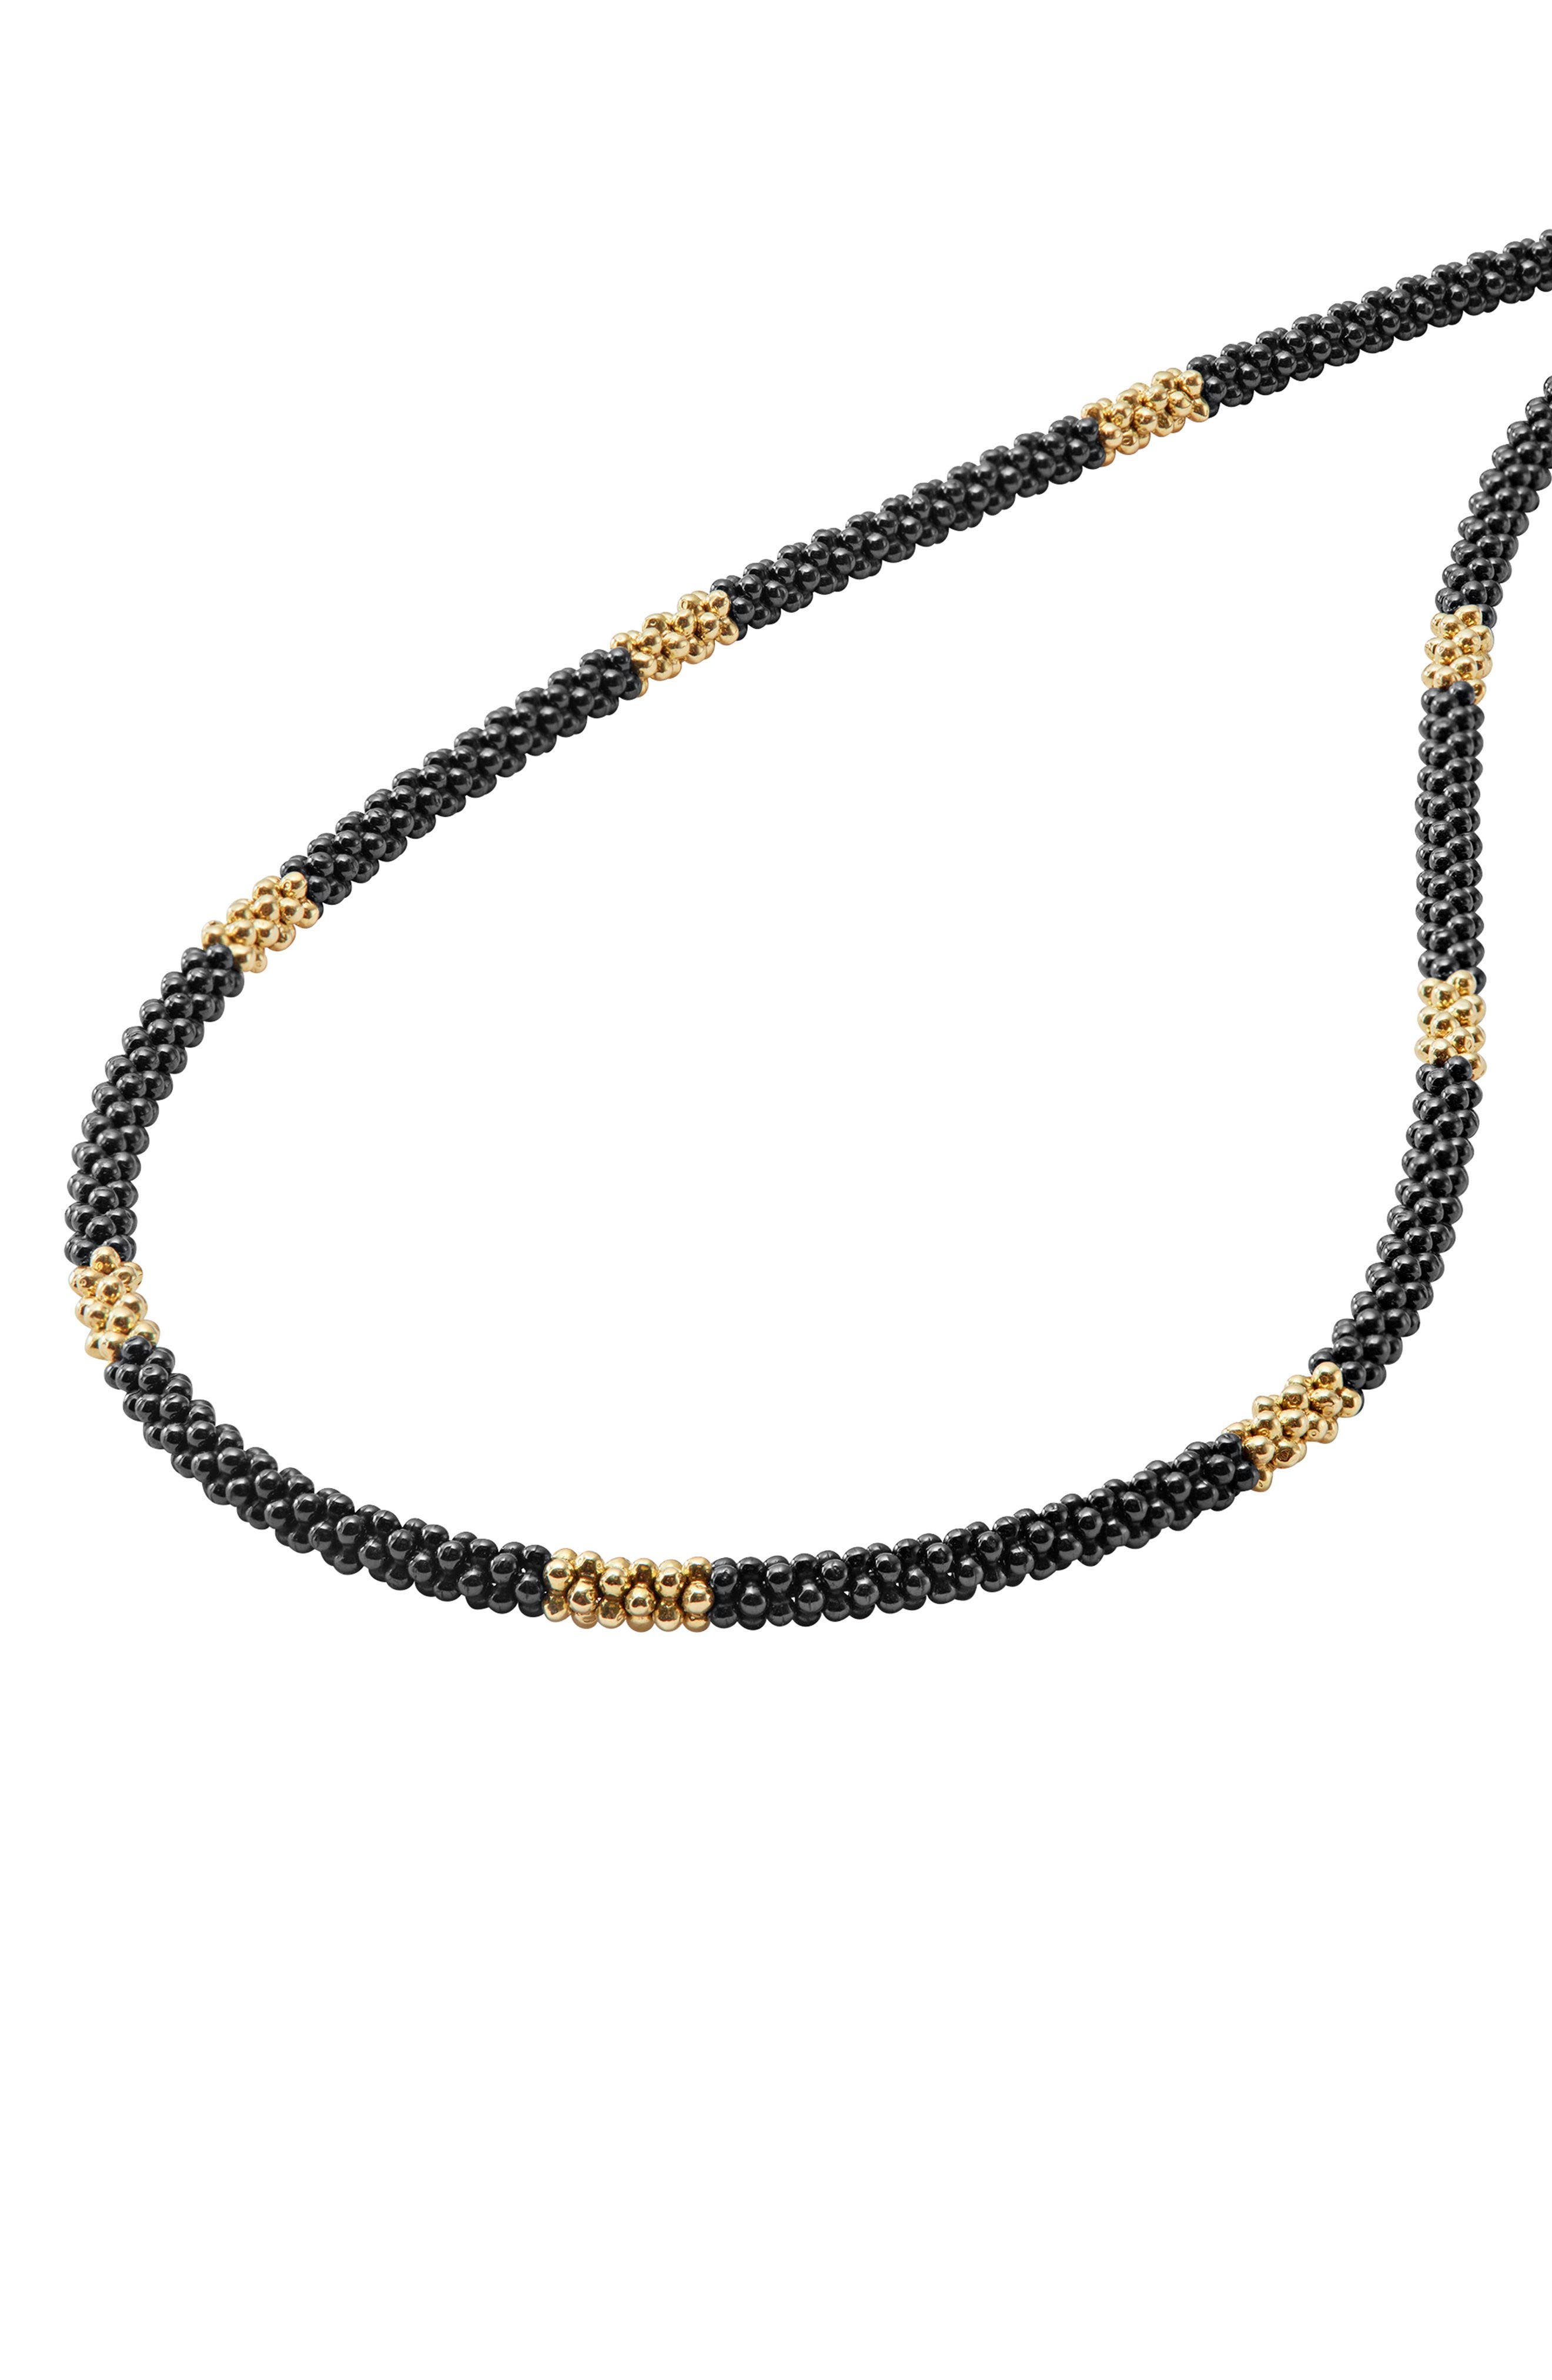 Gold & Black Caviar Rope Necklace,                             Alternate thumbnail 3, color,                             Gold